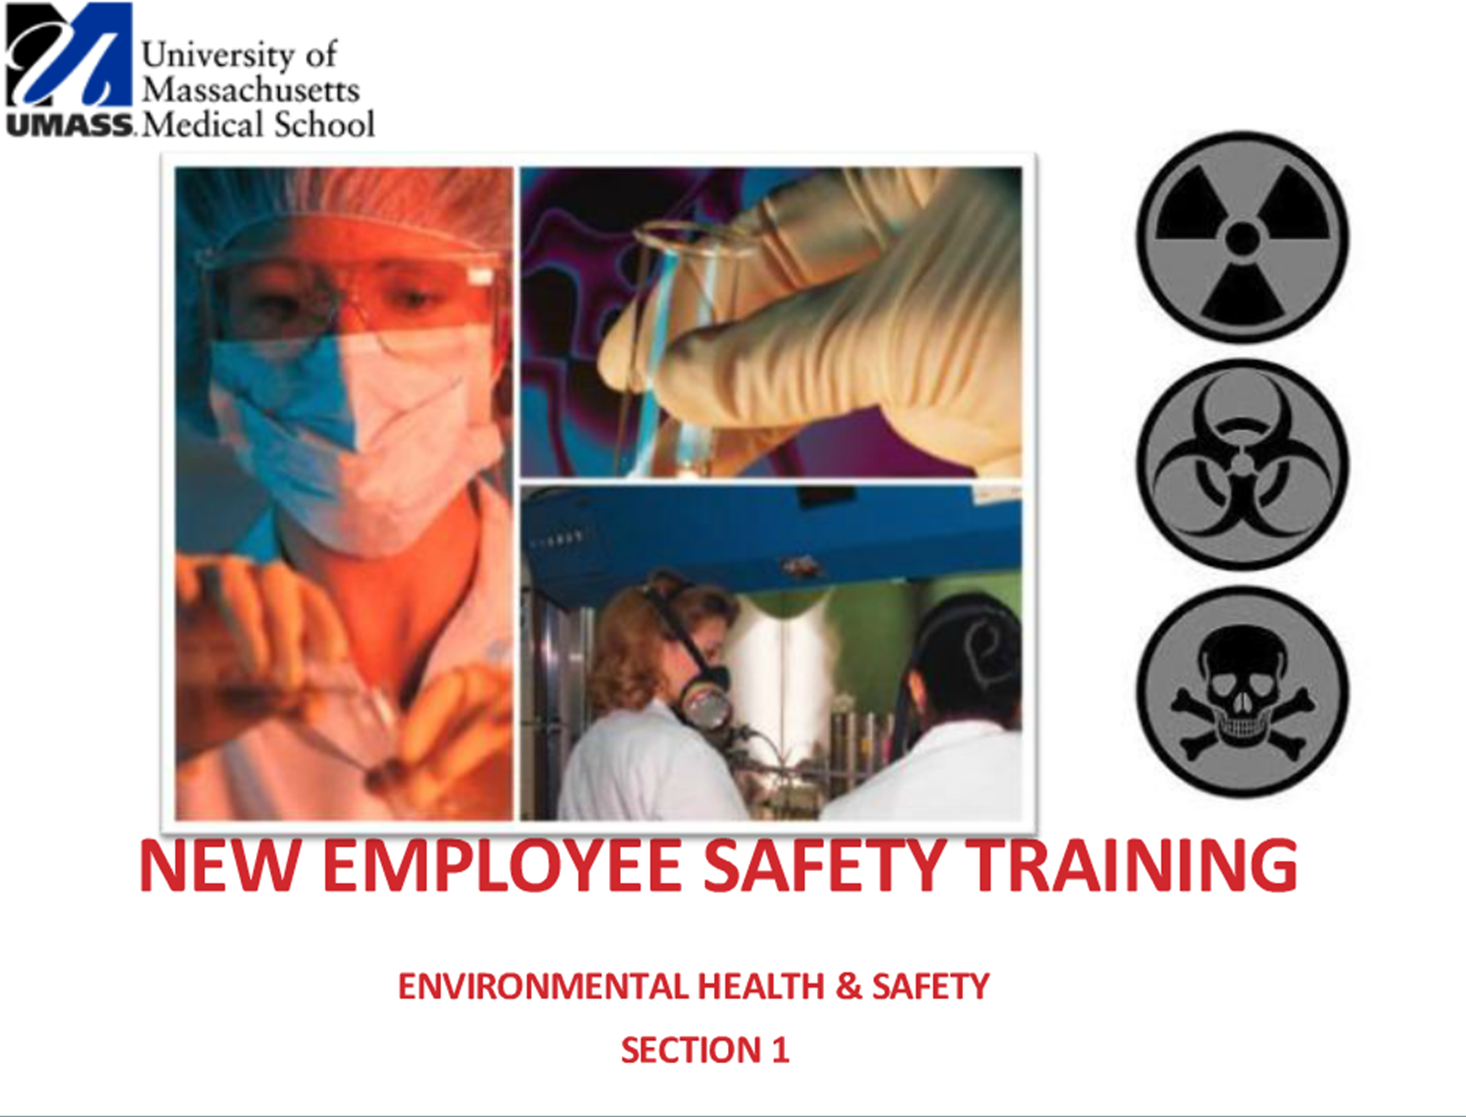 New Employee Safety Training Video